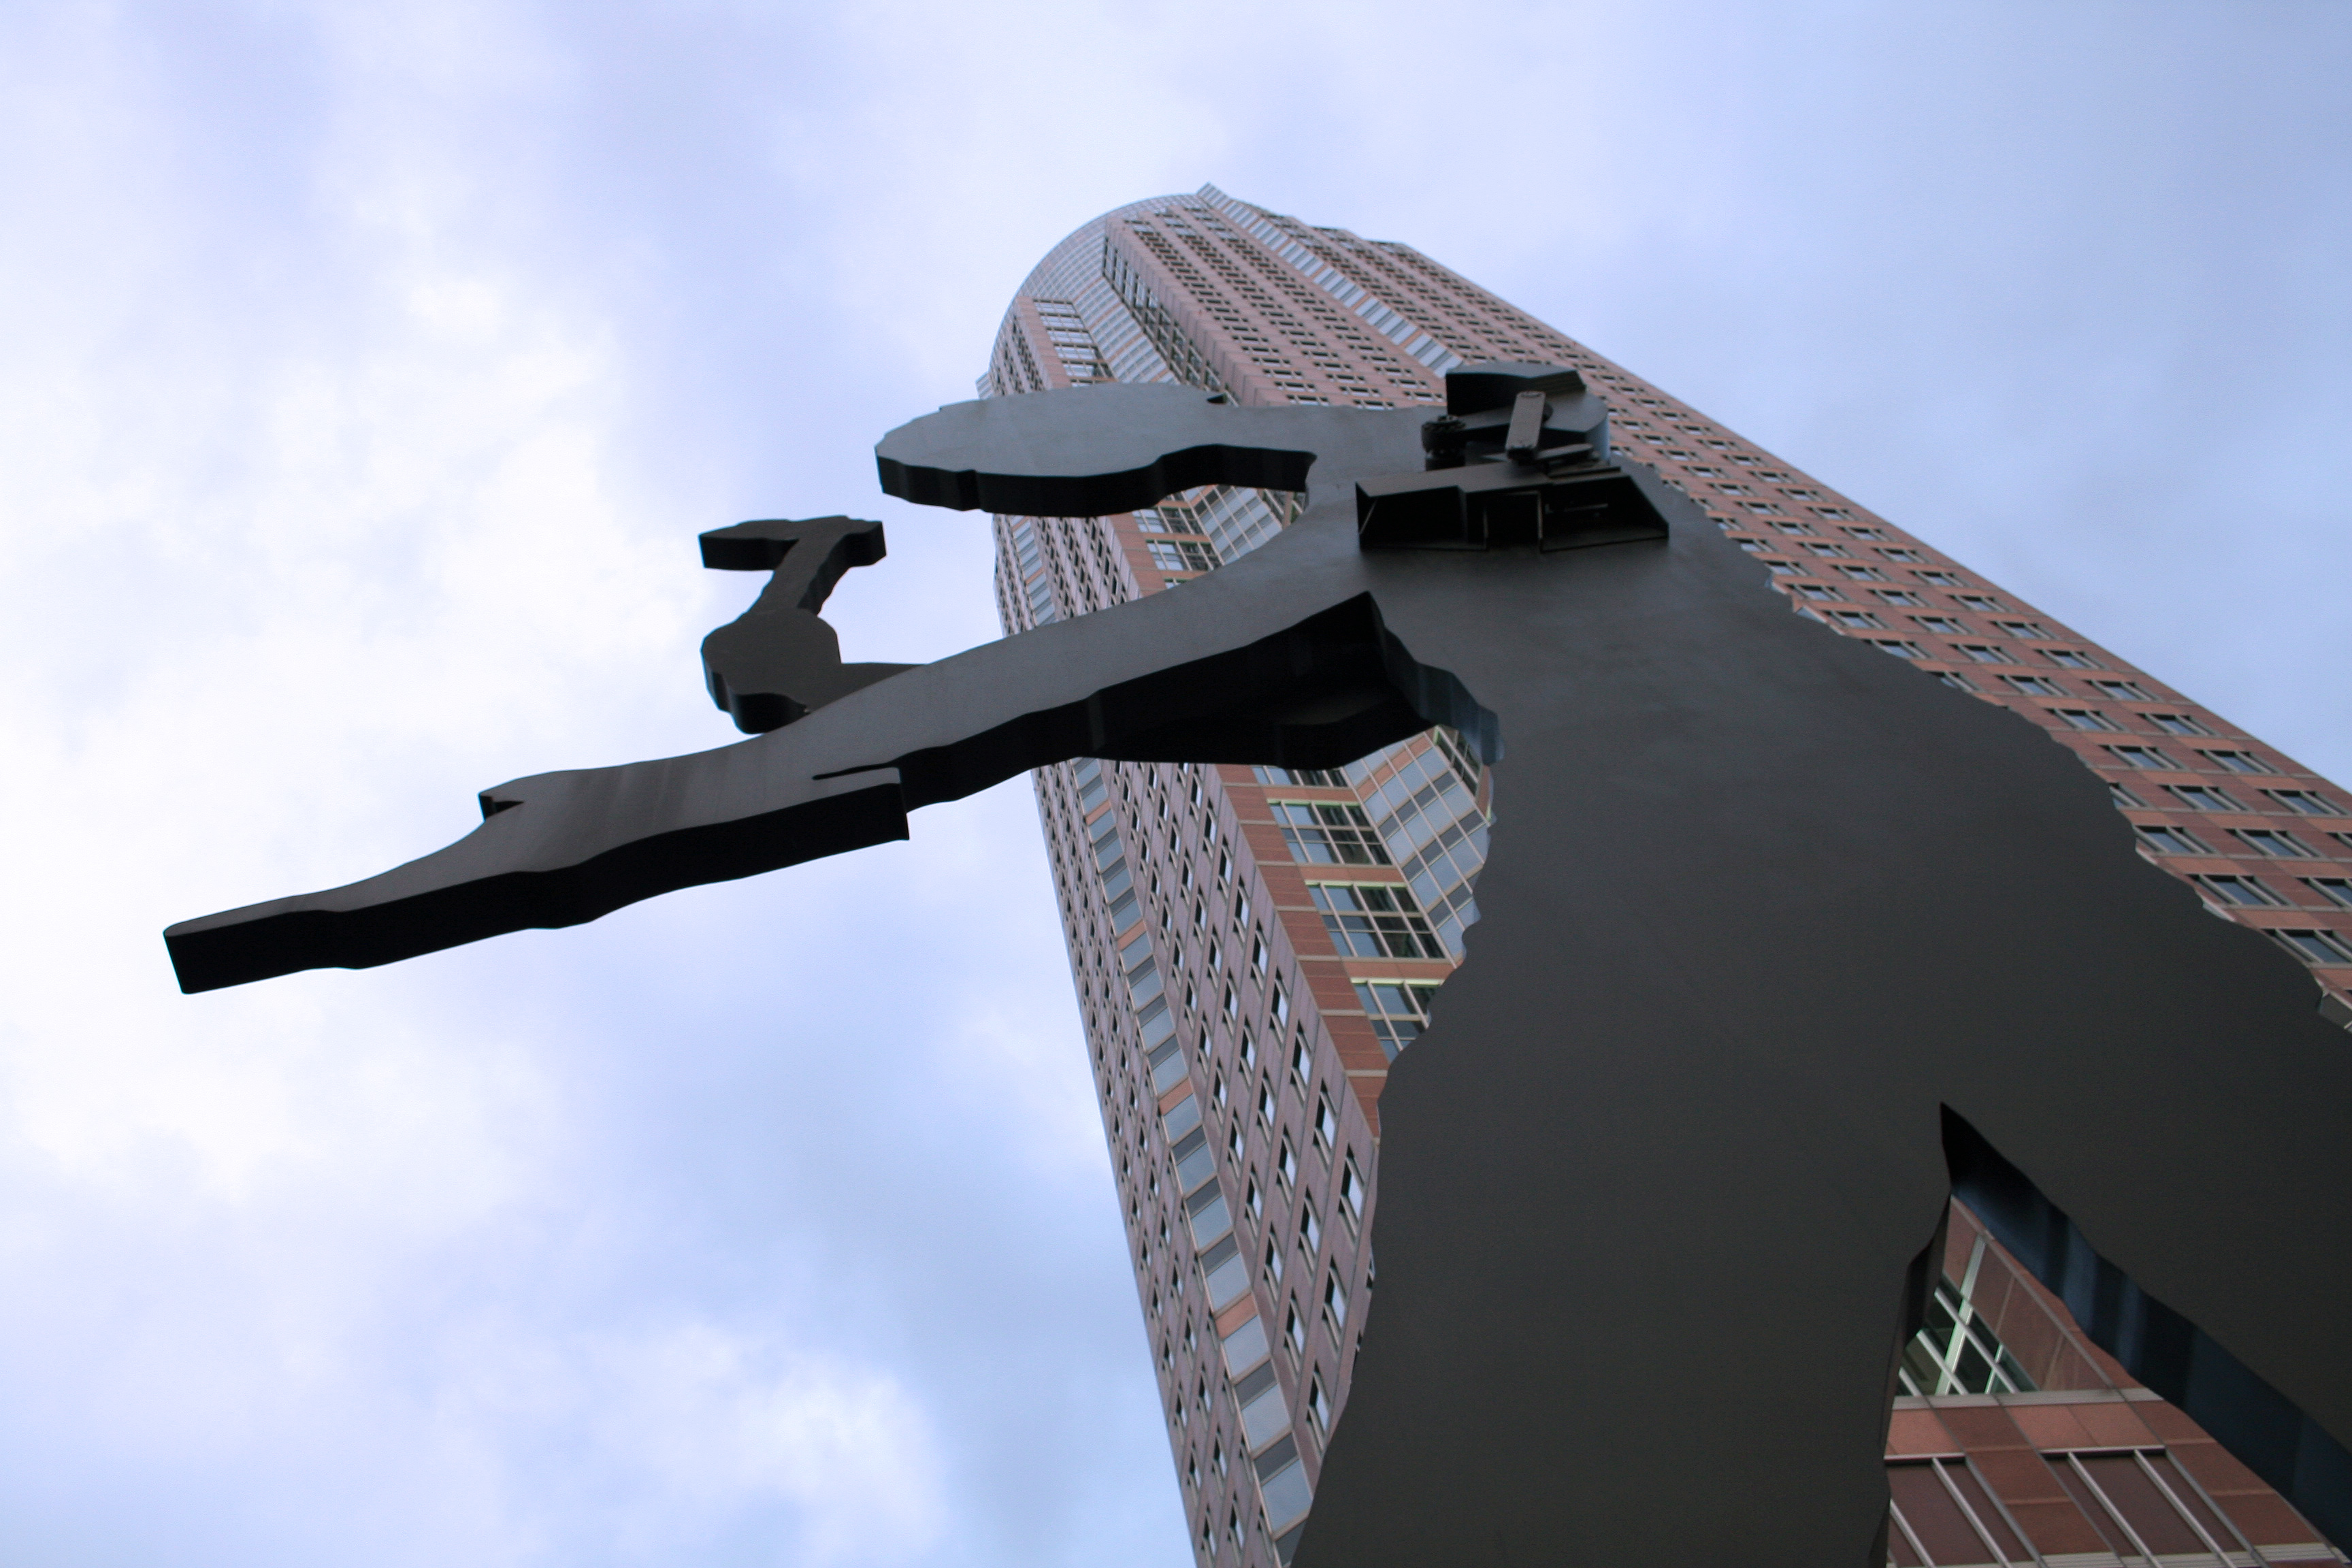 https://i0.wp.com/upload.wikimedia.org/wikipedia/commons/f/f4/Hammering_Man_vor_Messeturm.jpg